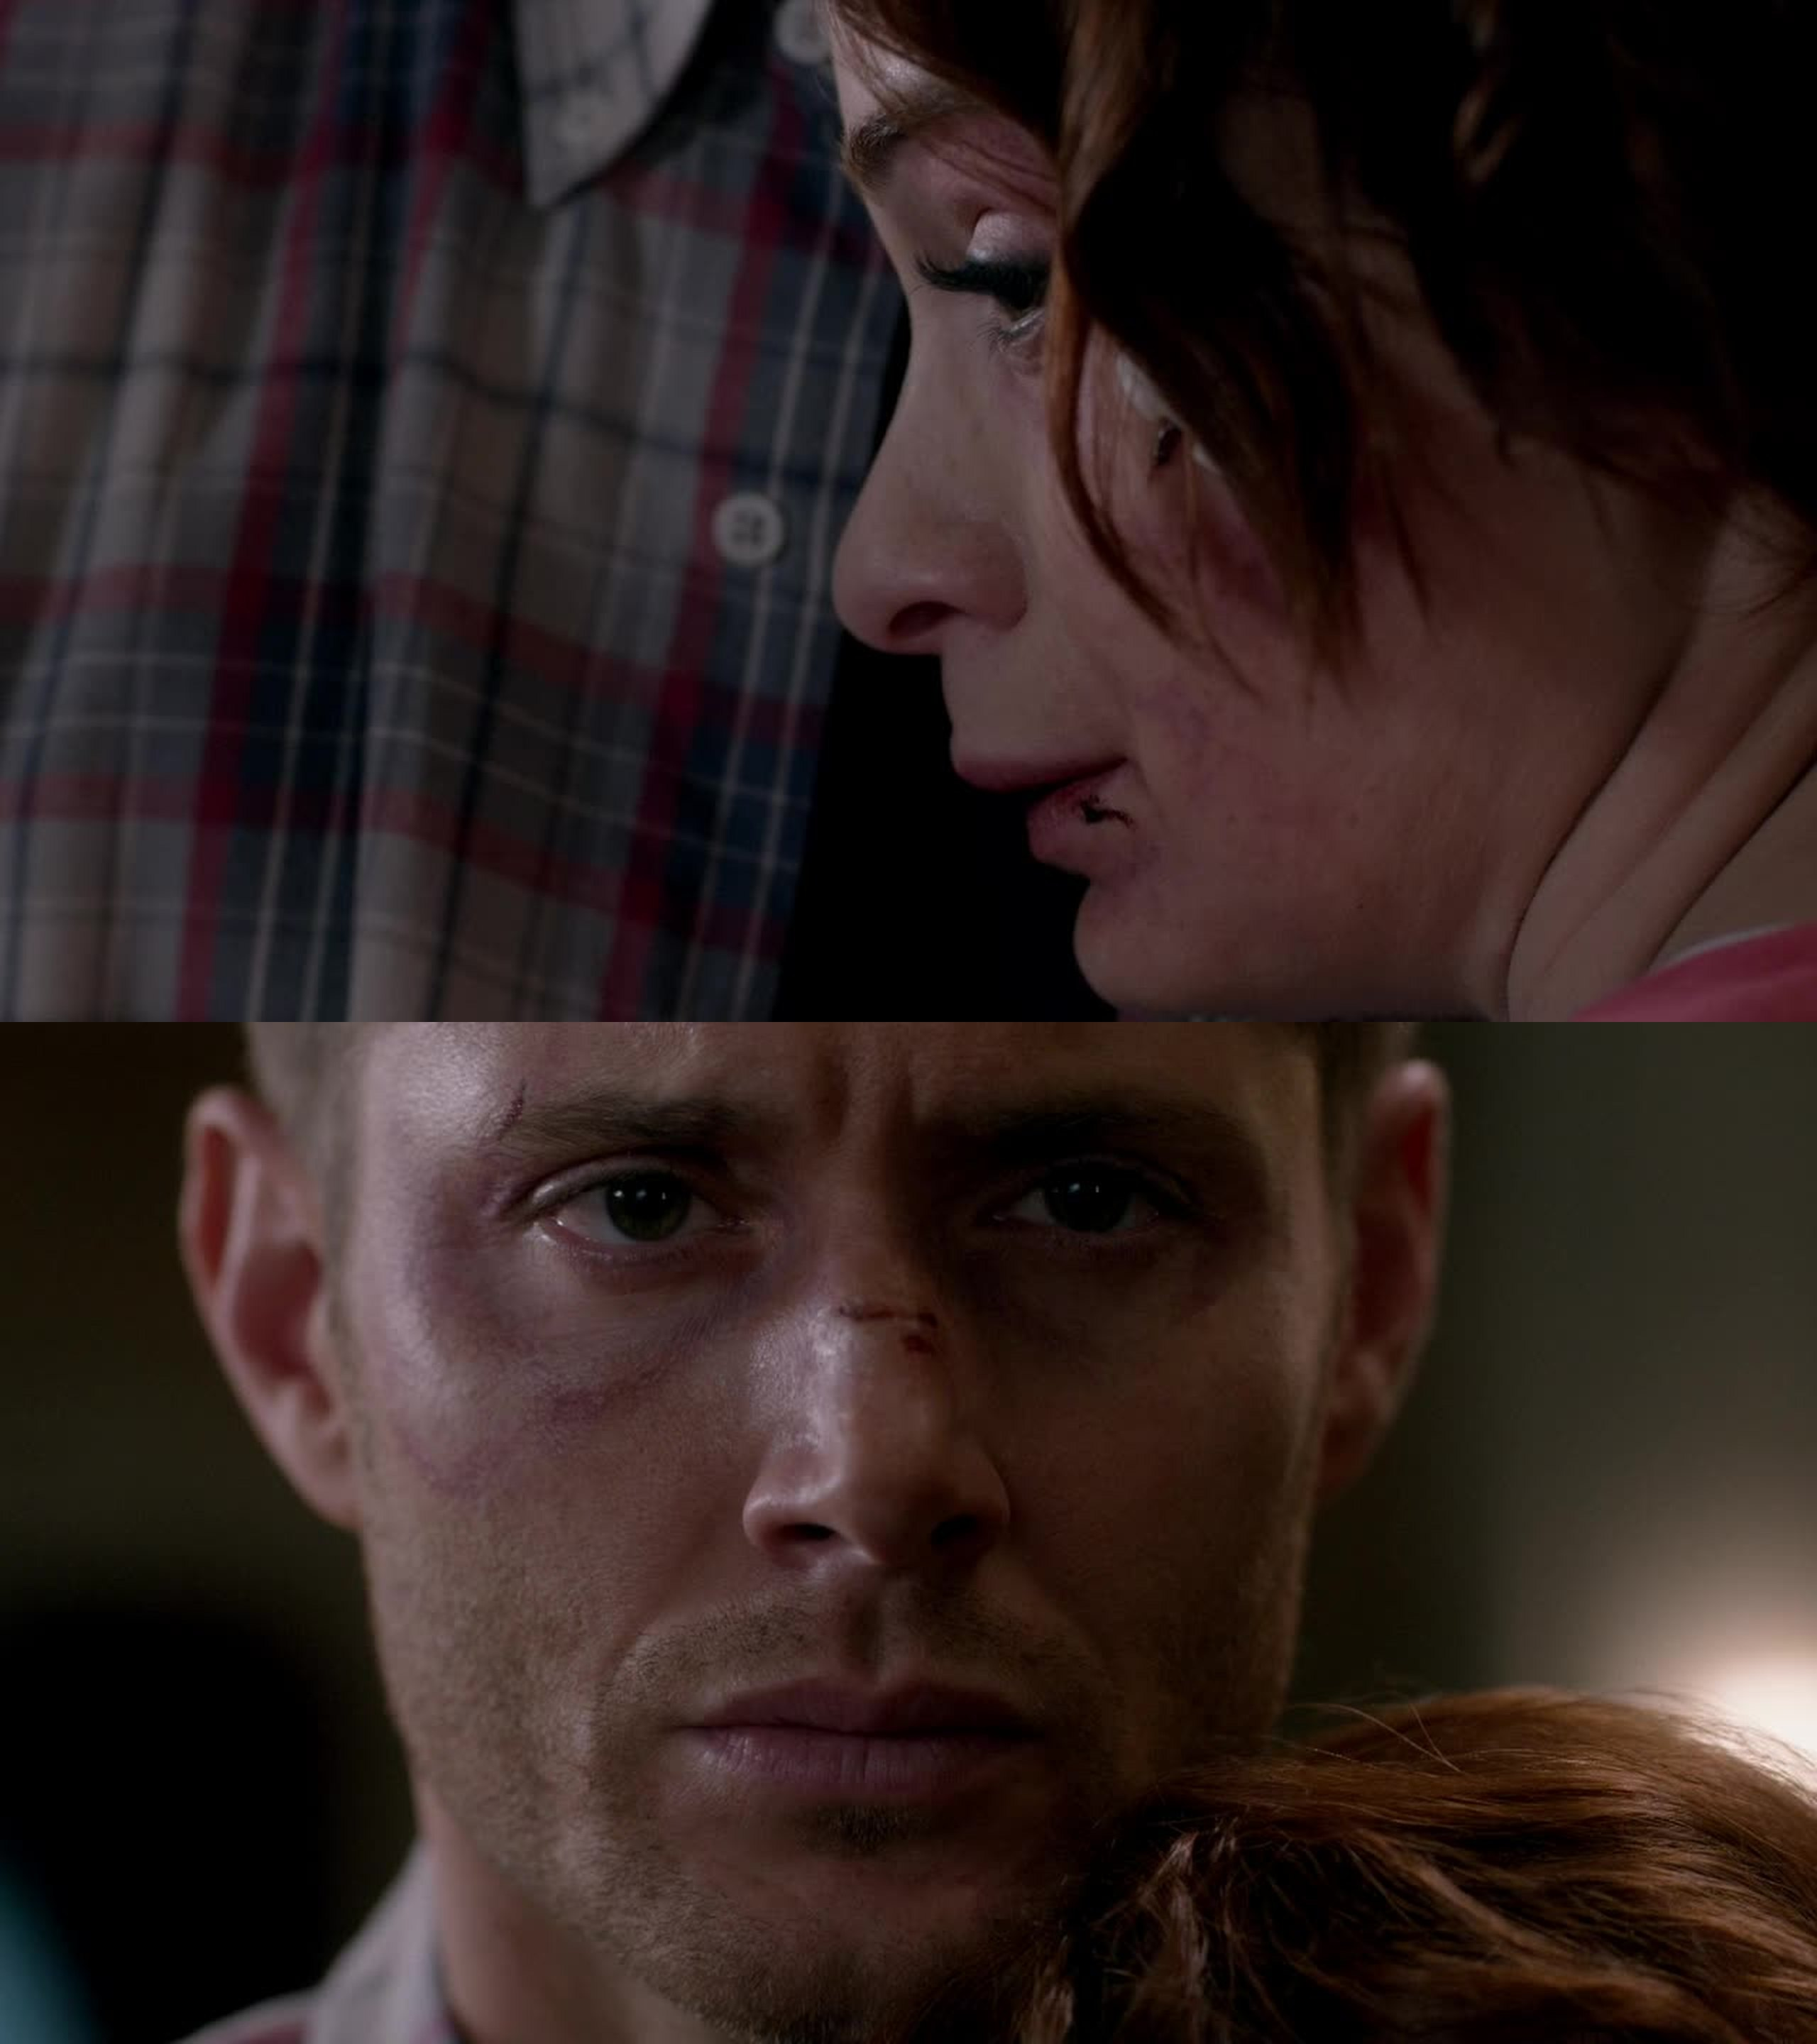 """Charlie.. oh god how I missed you. I cried a lot at the end of this episode, Dean you've lost so much, but you are not alone in this, there are still people who love you and wont let you give up, your brother, your sister and Cas, you'll get through this, and whatever happens they will always be on your side, even if you think you don't deserve it, they disagree Like Cas said, """"It's possible there is a little monster in all of us"""" I can't wait for the next episode"""